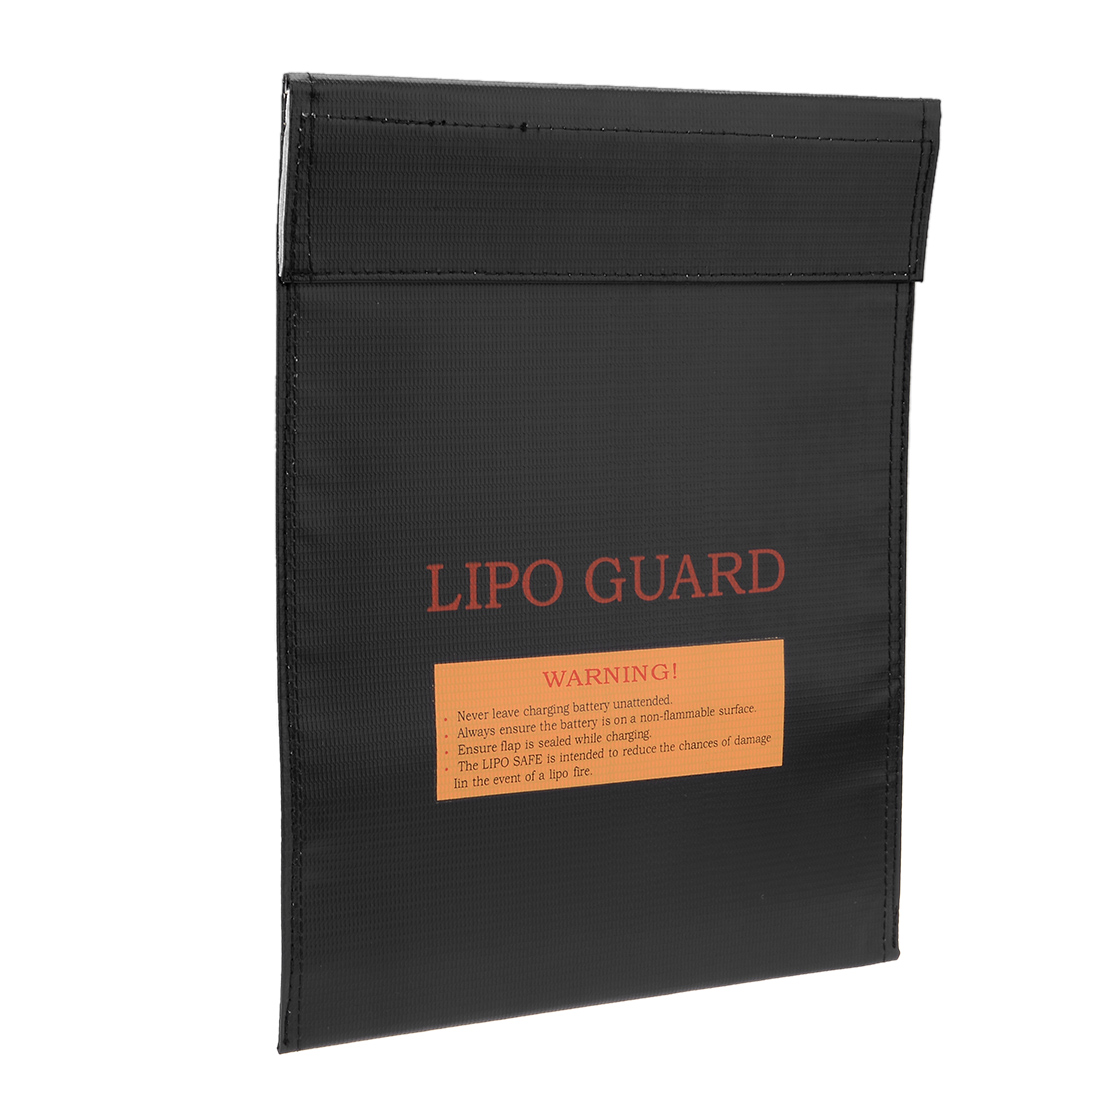 Lipo Battery Fireproof Explosionproof Bag Storage Guard Safe Charging Holder 23cm x 30cm Black